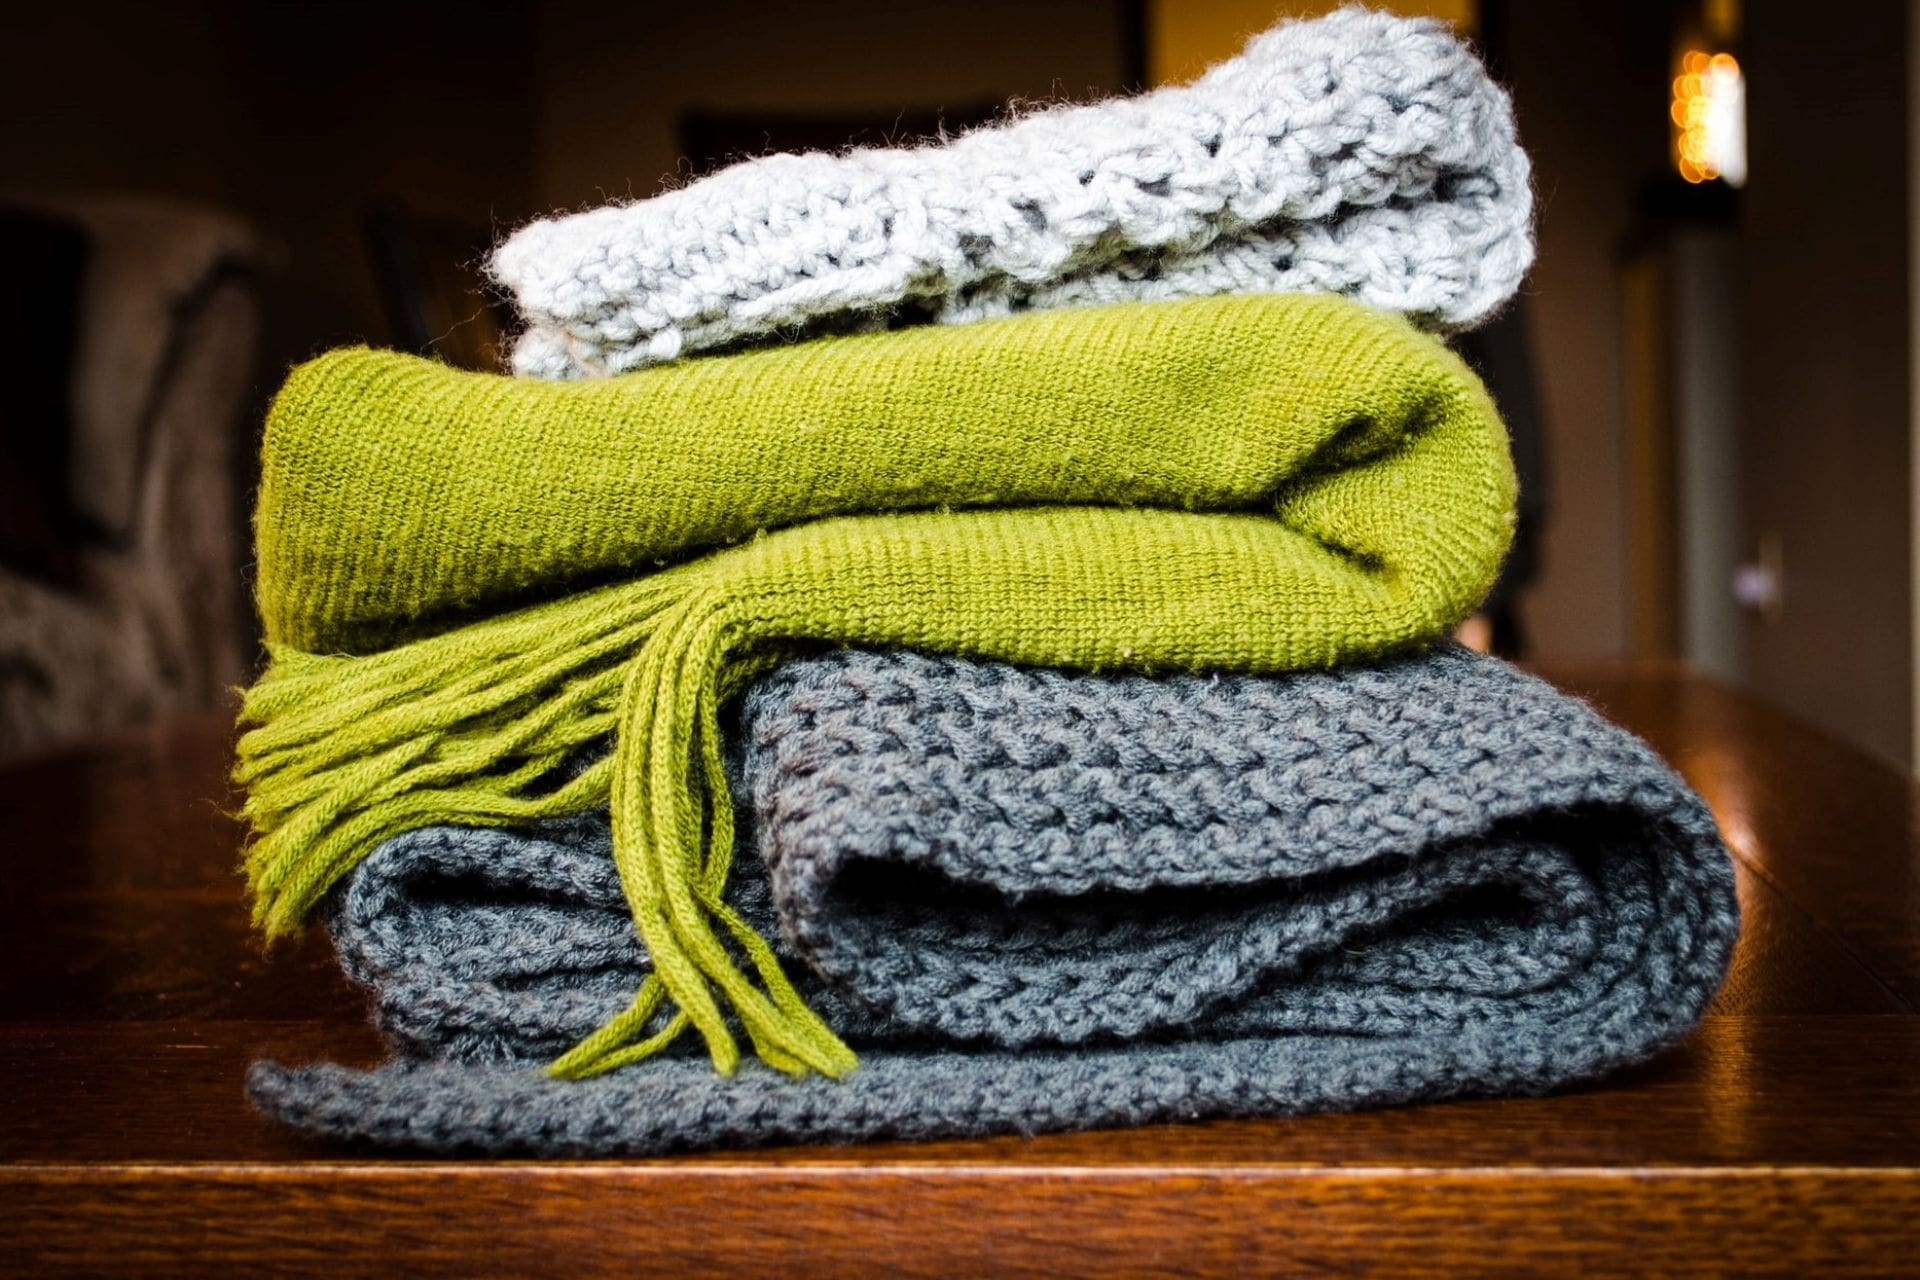 warm-woolen-knitted-scarves-folded-up-on-table-cheapest-ways-to-heat-a-house